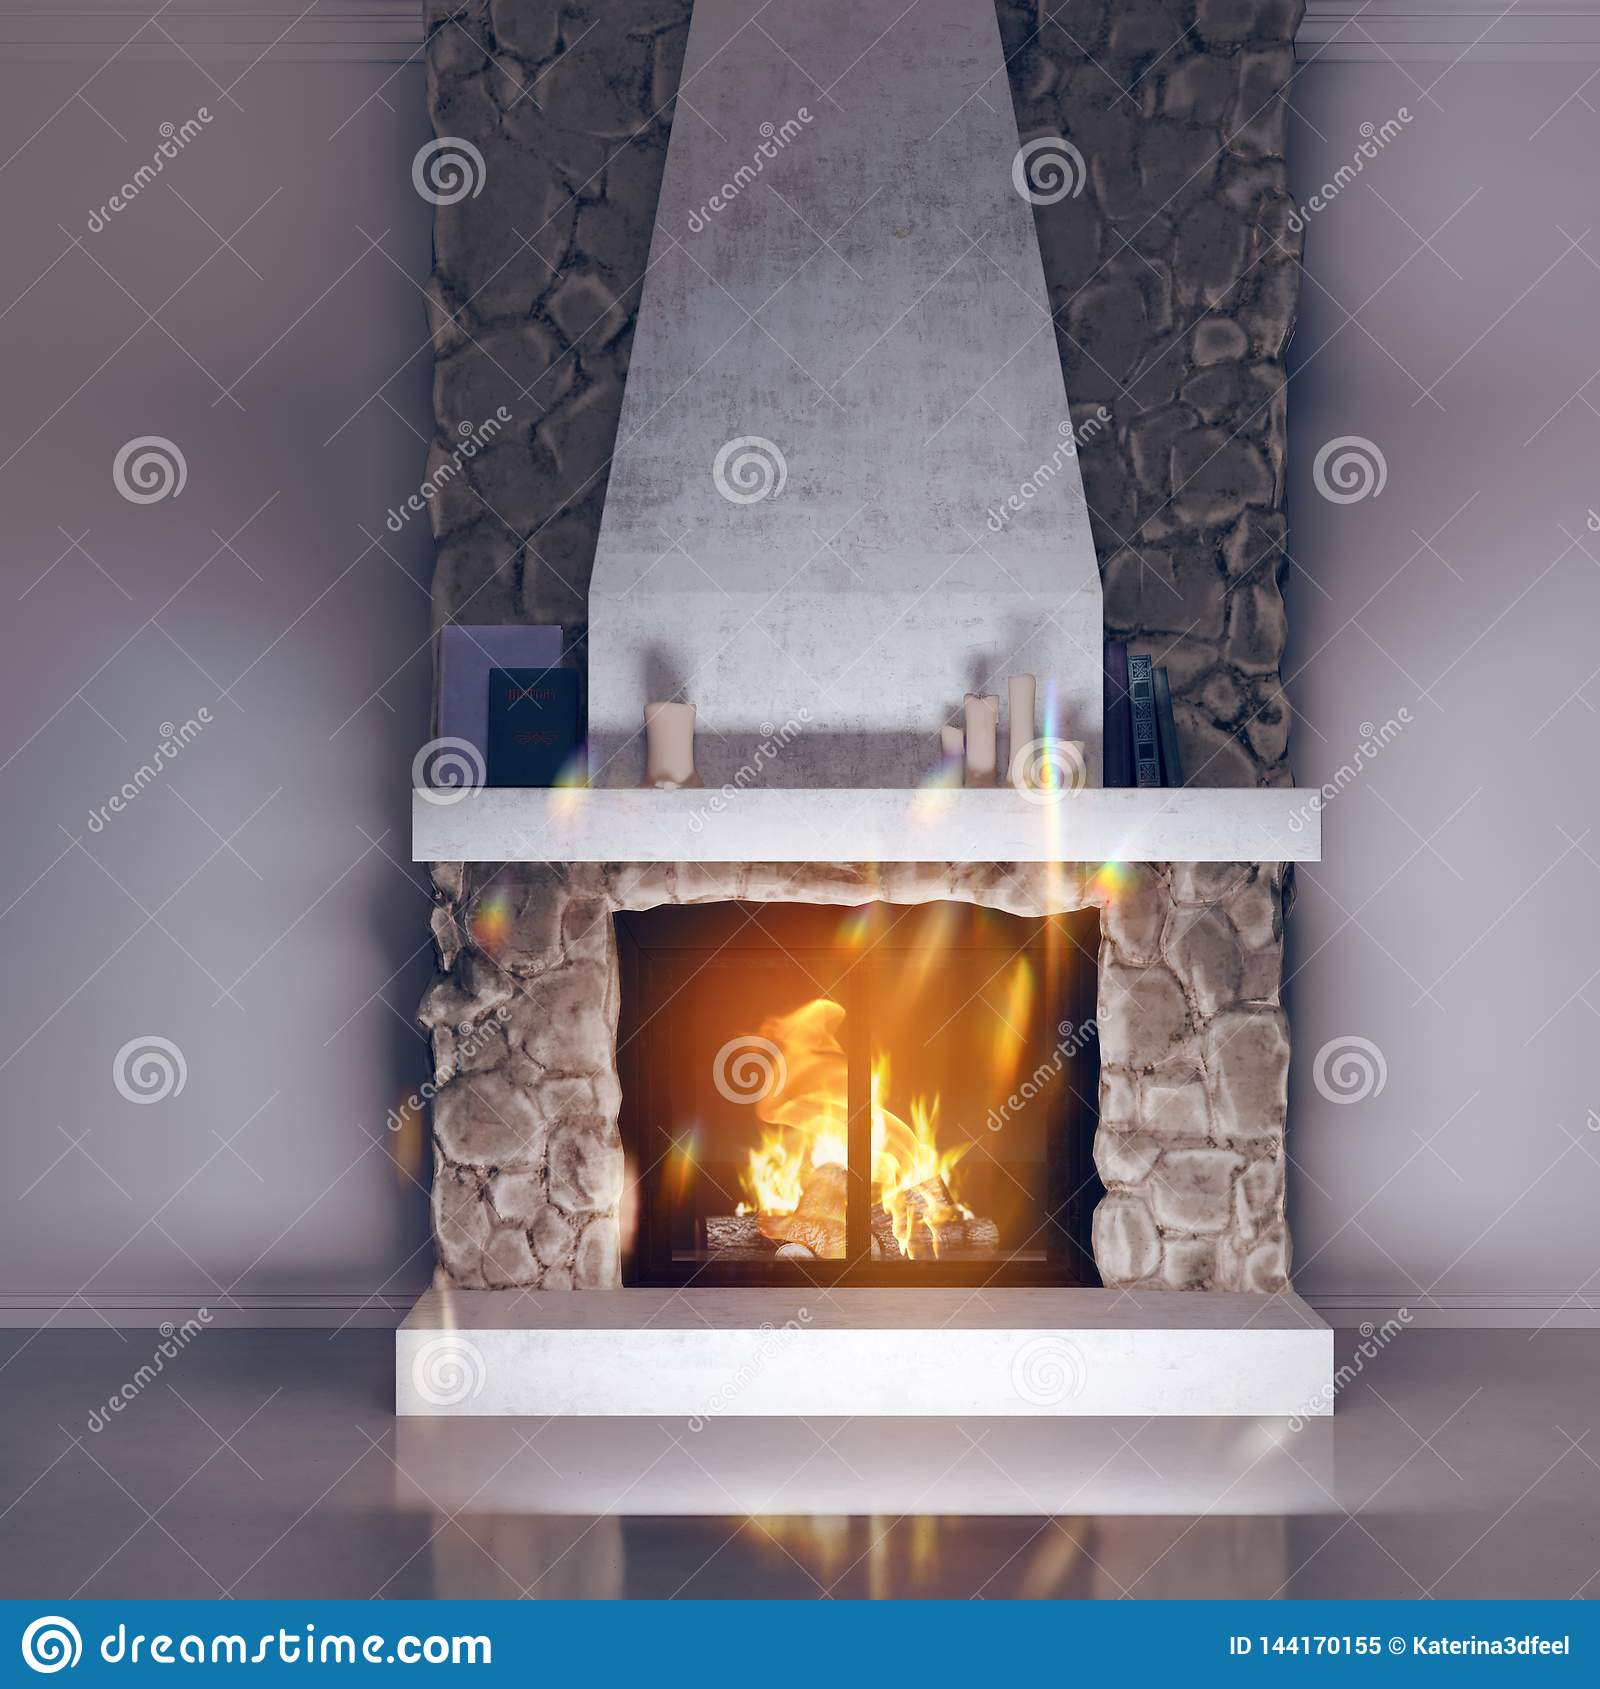 3d model of a fireplace made of stone. Fireside, chalet style in the interior.